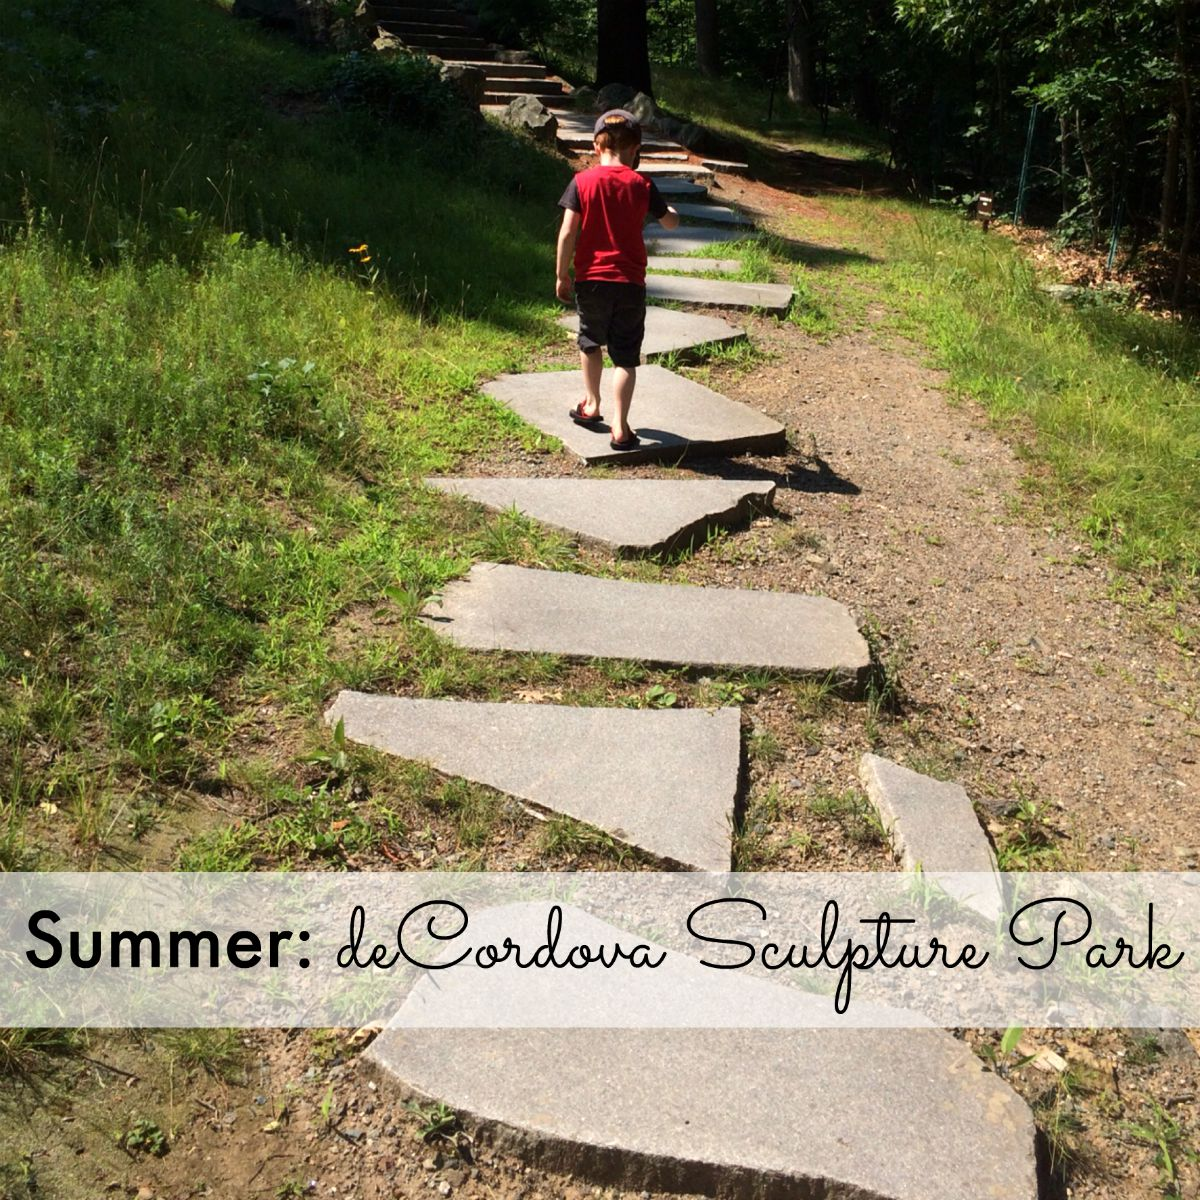 Summer: deCordova Sculpture Park